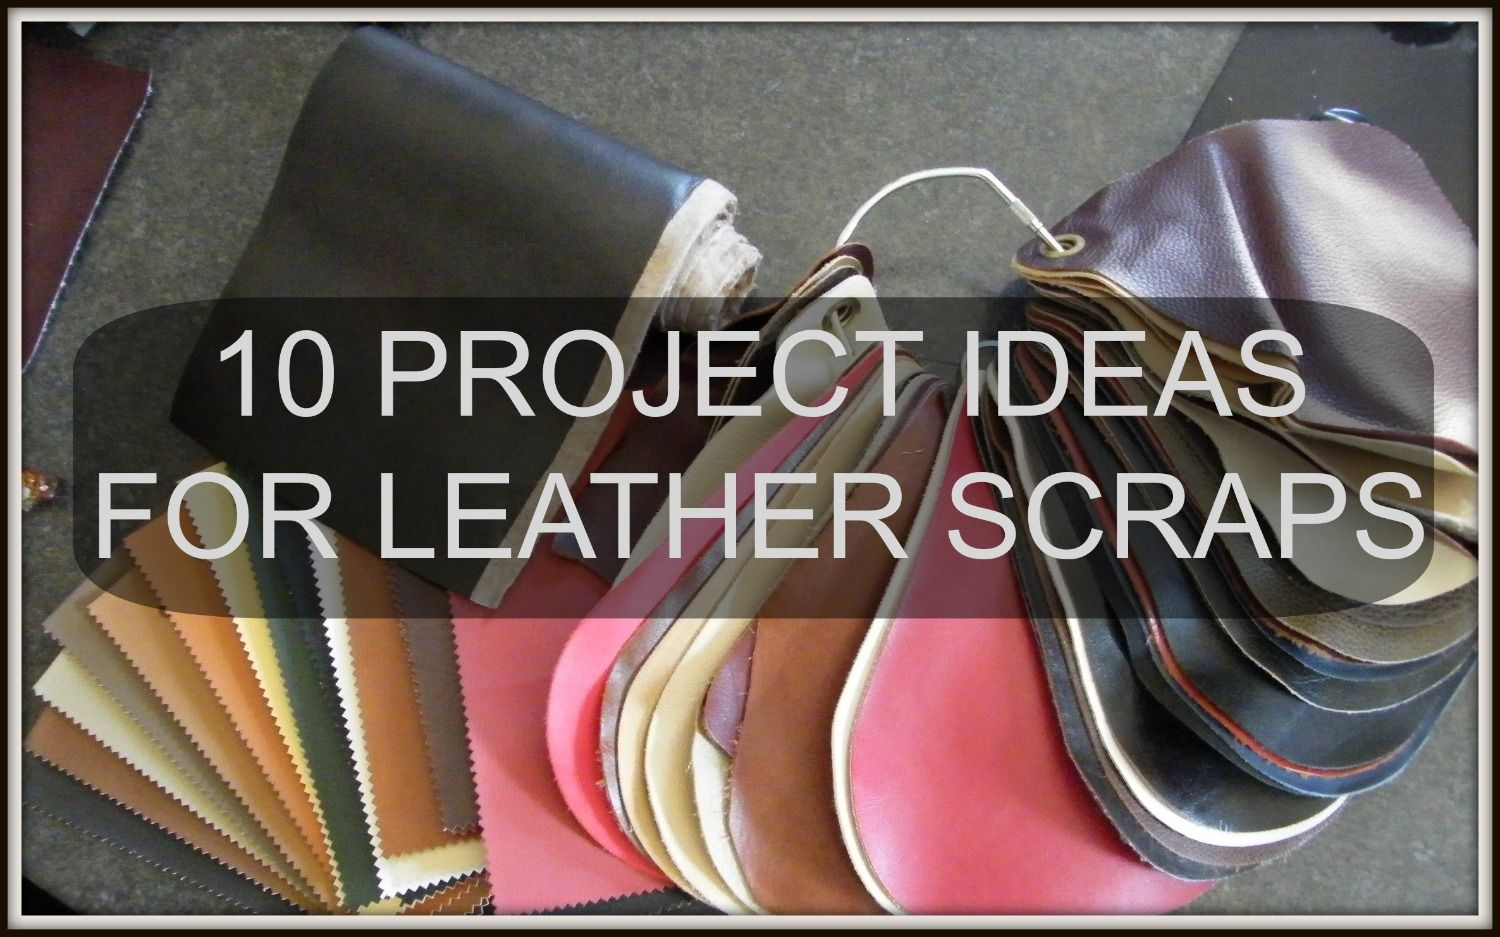 Top 10 Projects To Make With Leather Scraps